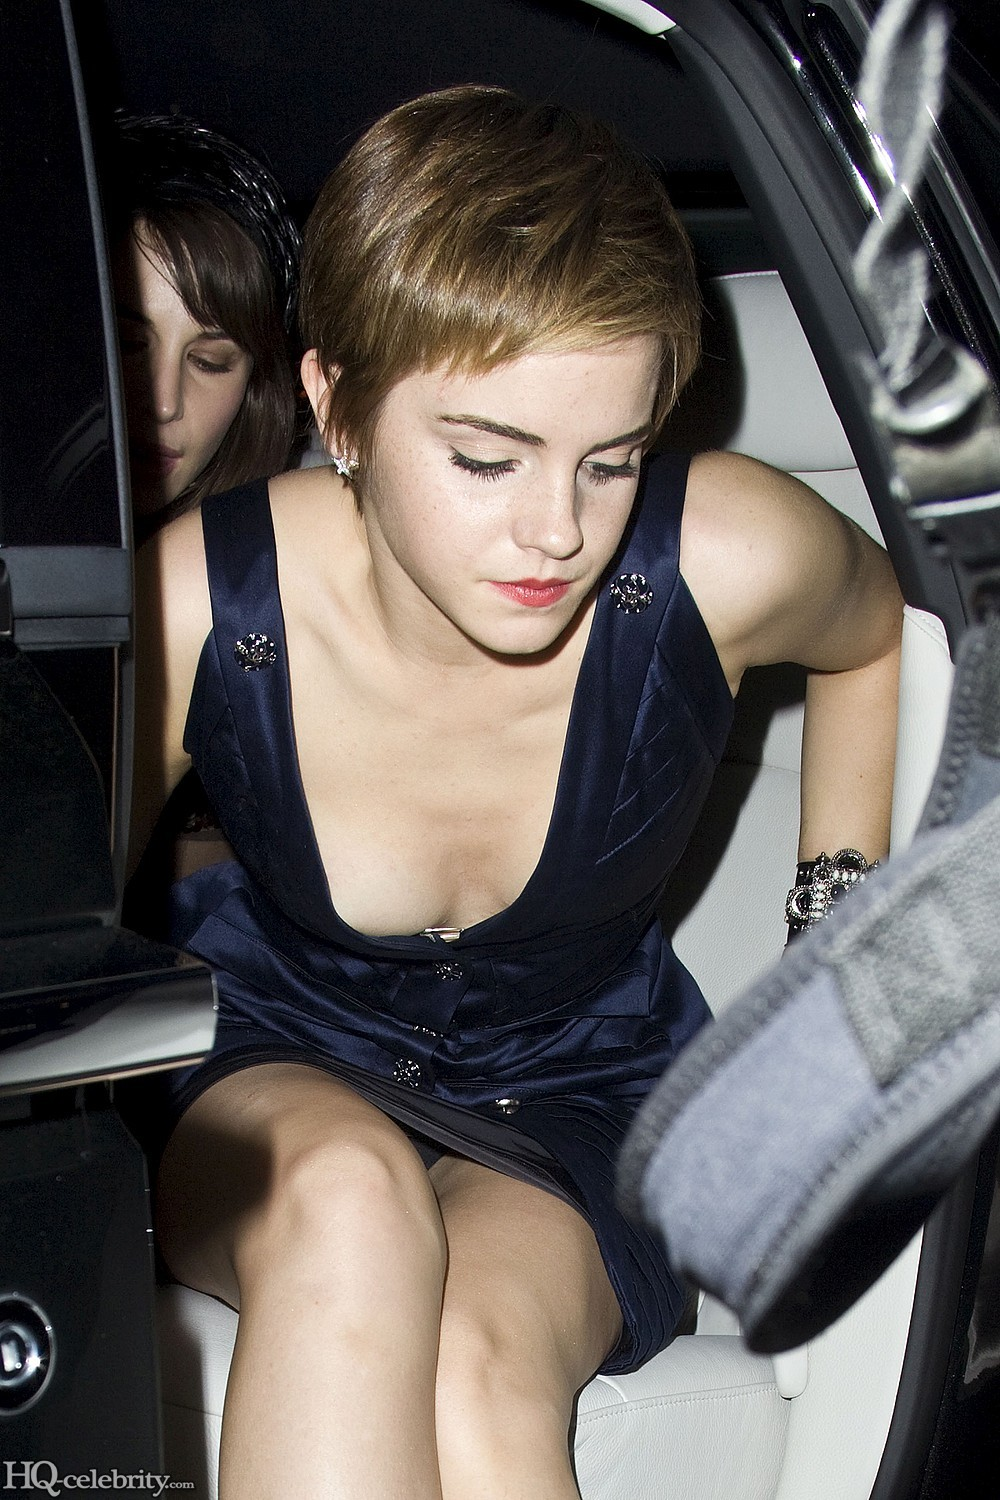 Car Modifikation Emma Watson In Blue Suit With Most Light Makeup